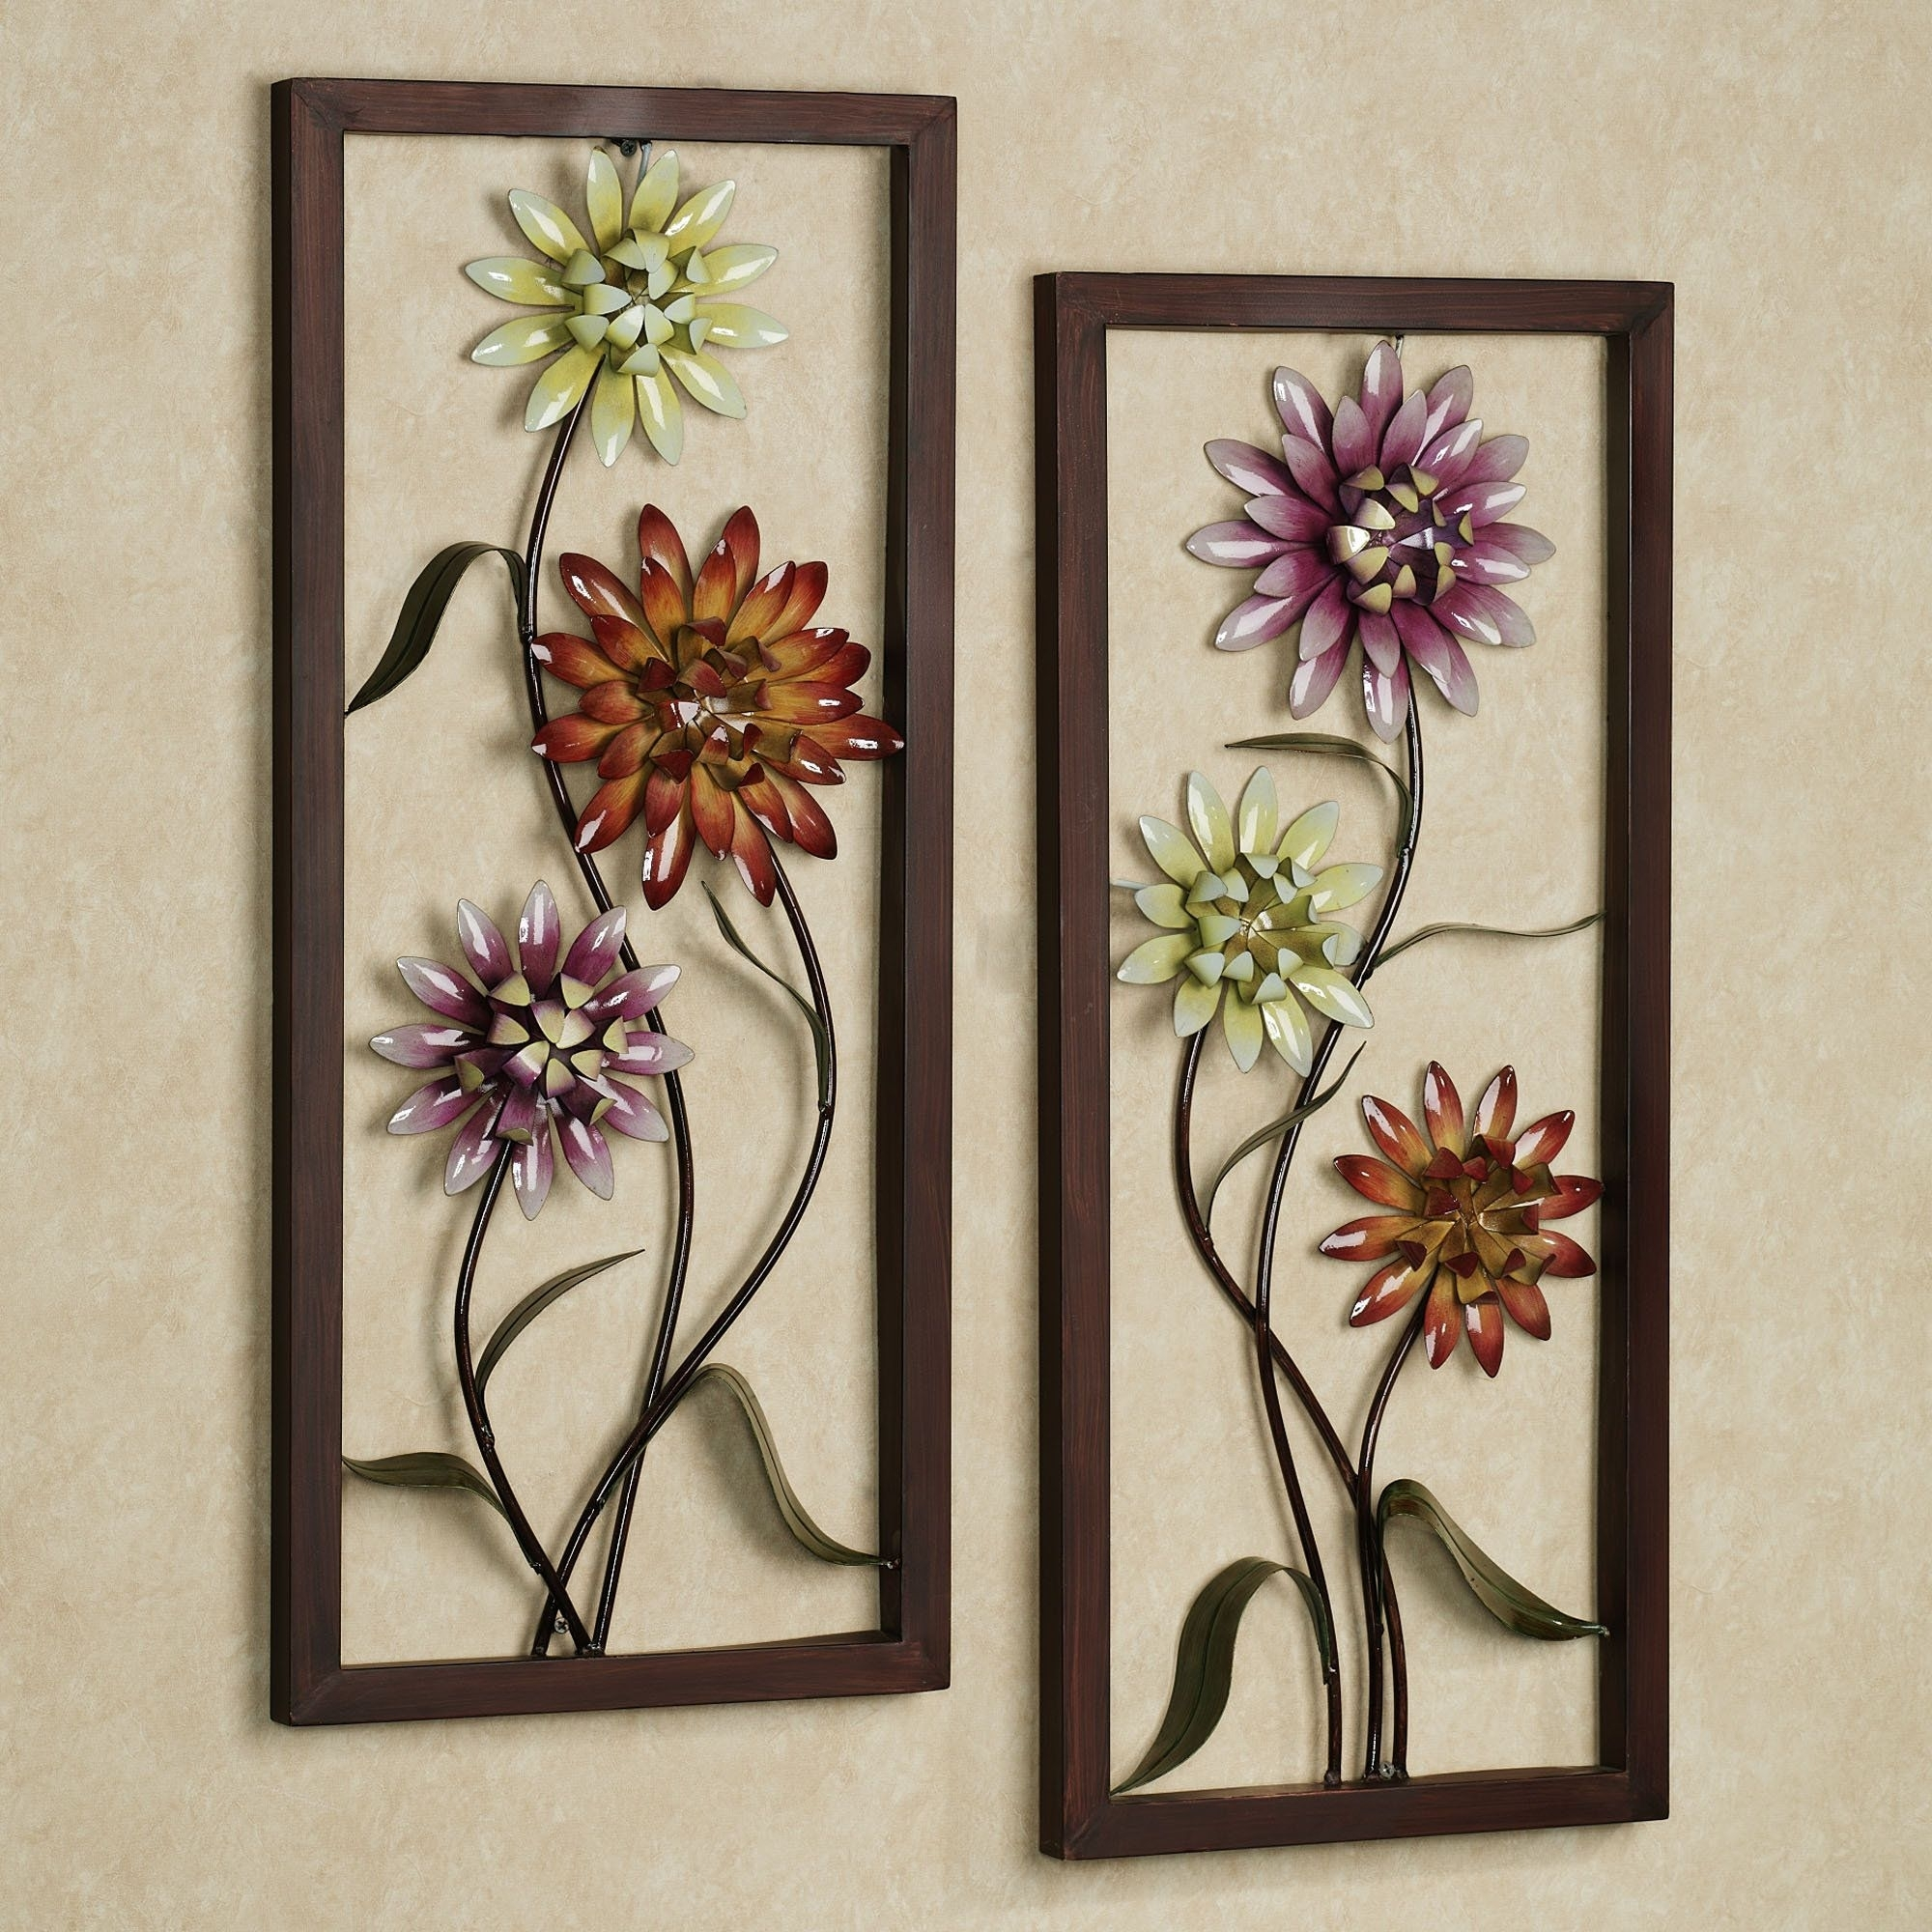 Some Ideas For Your Bathroom Wall Decor: Bathroom Wall Art For Intended For Latest Flowers Wall Accents (View 12 of 15)